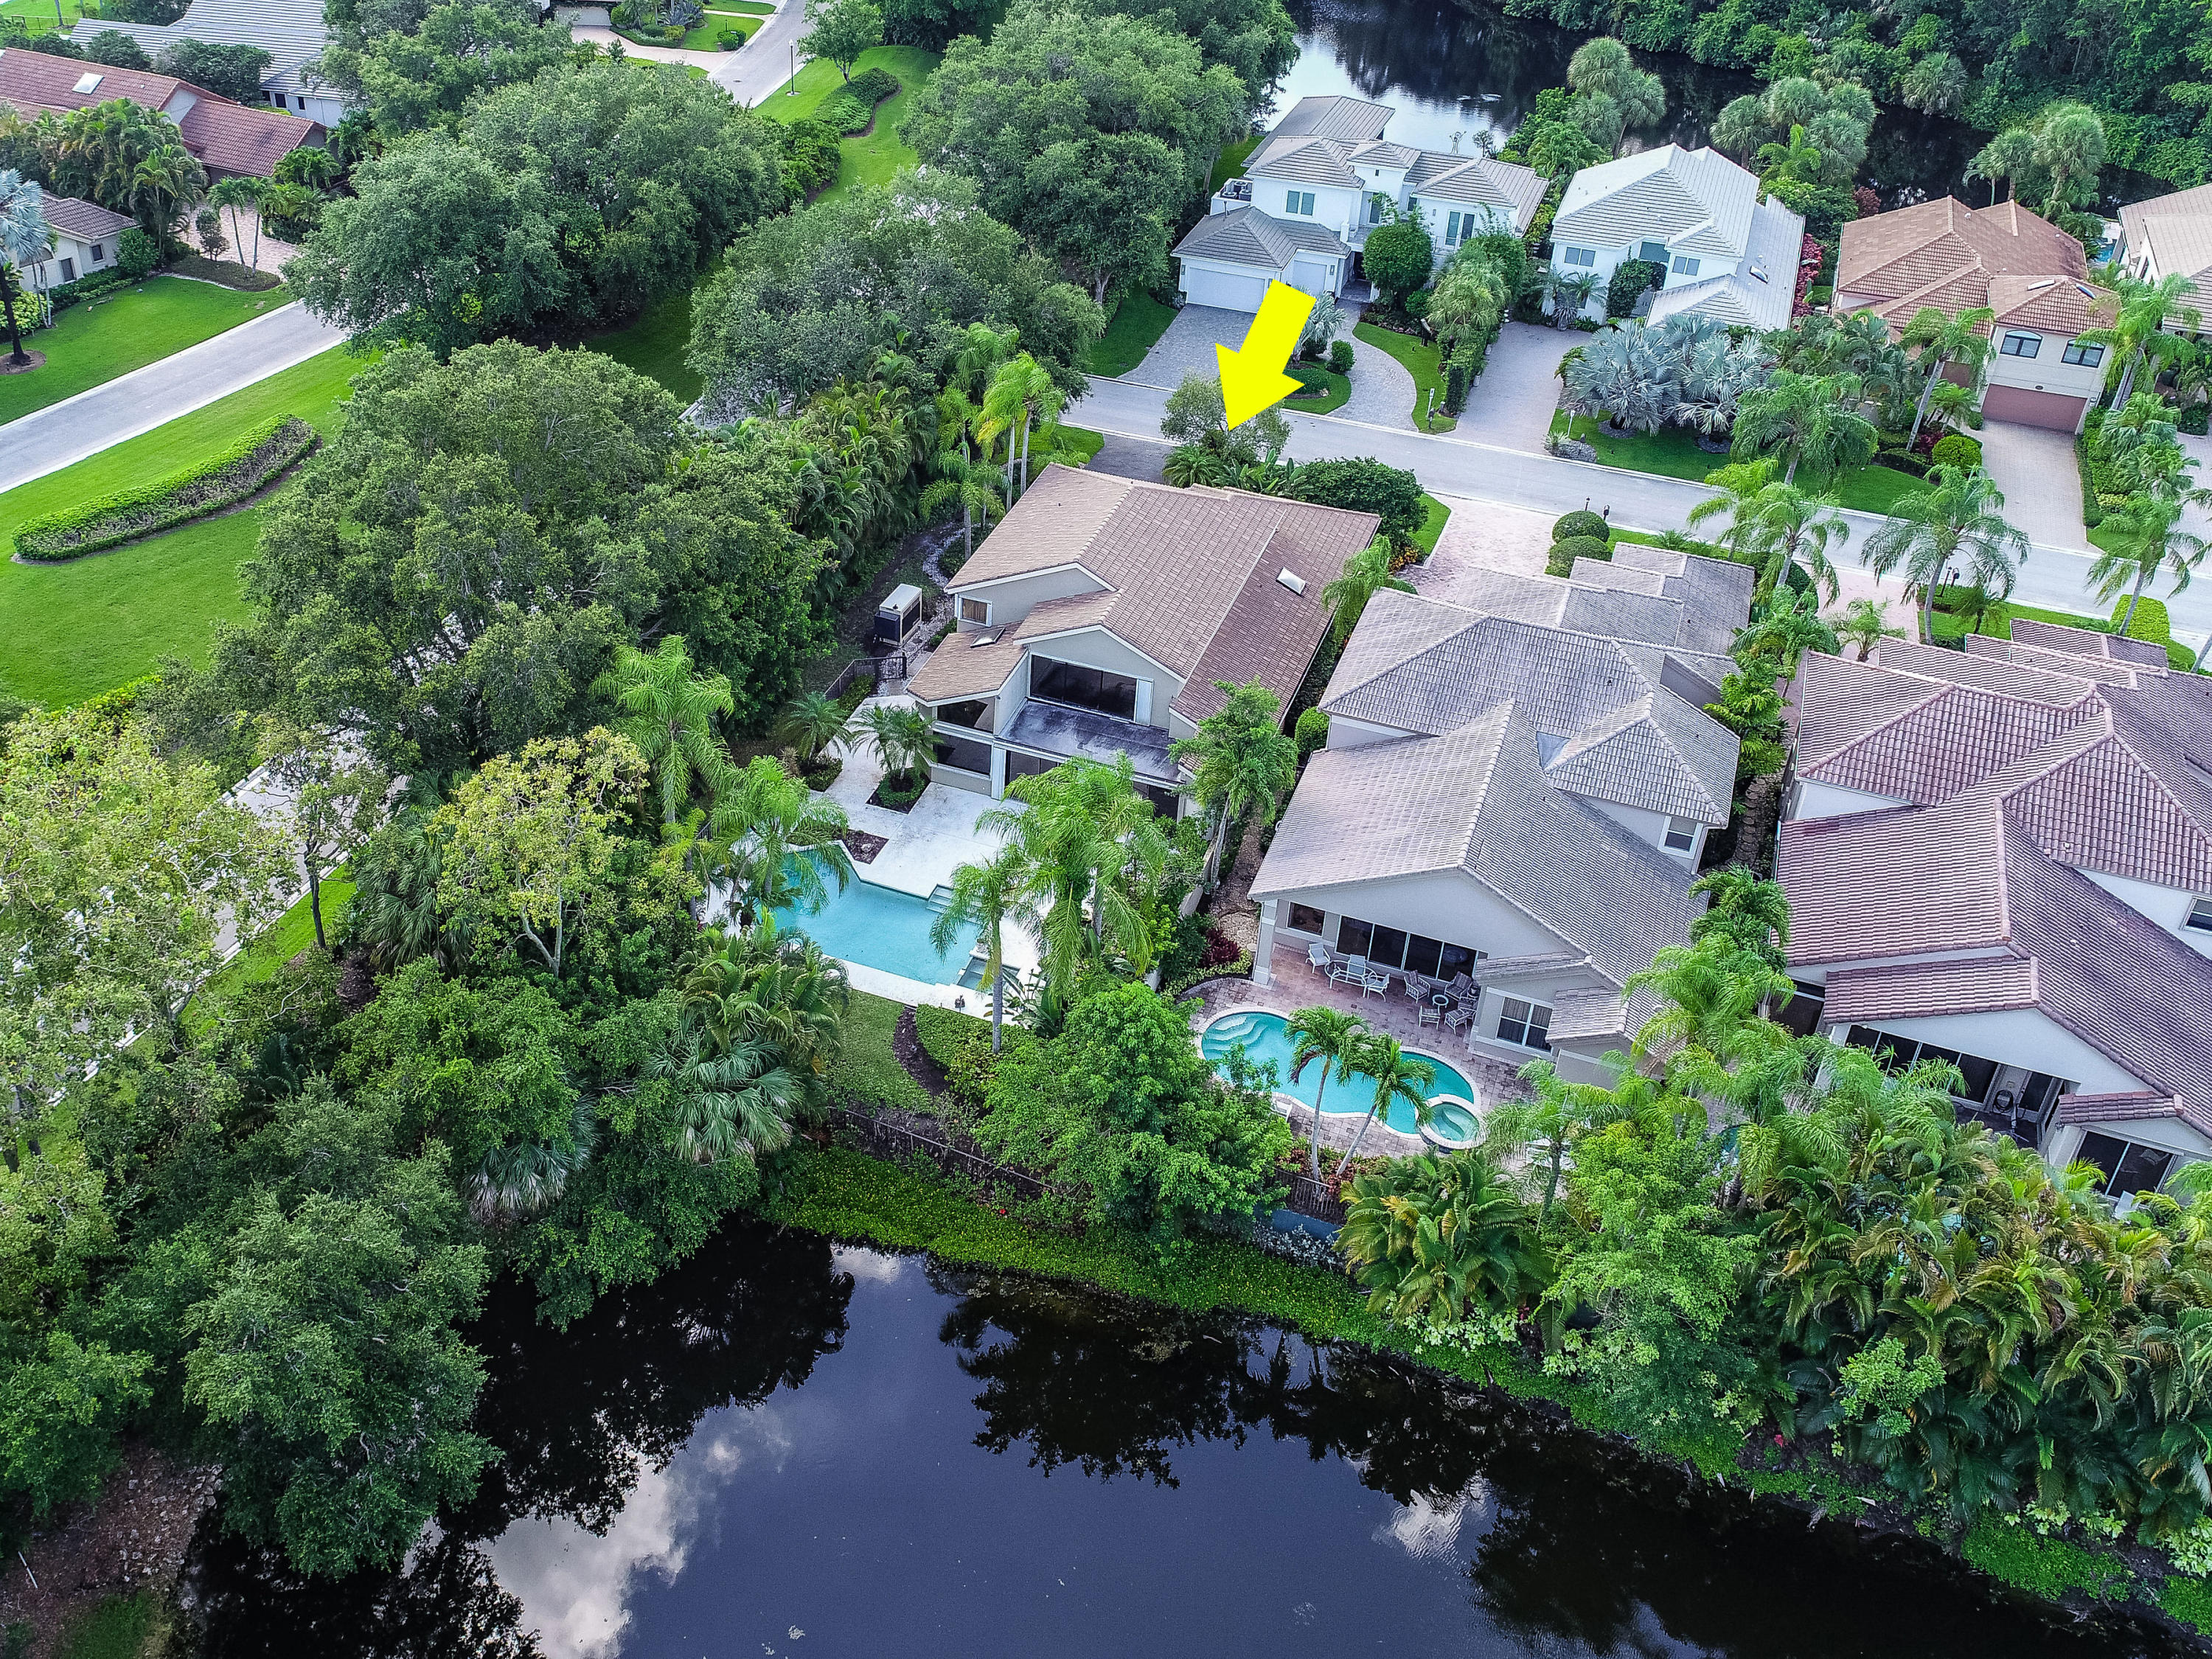 3651 Toulouse Drive, Palm Beach Gardens, Florida 33410, 4 Bedrooms Bedrooms, ,4.1 BathroomsBathrooms,A,Single family,Toulouse,RX-10545876